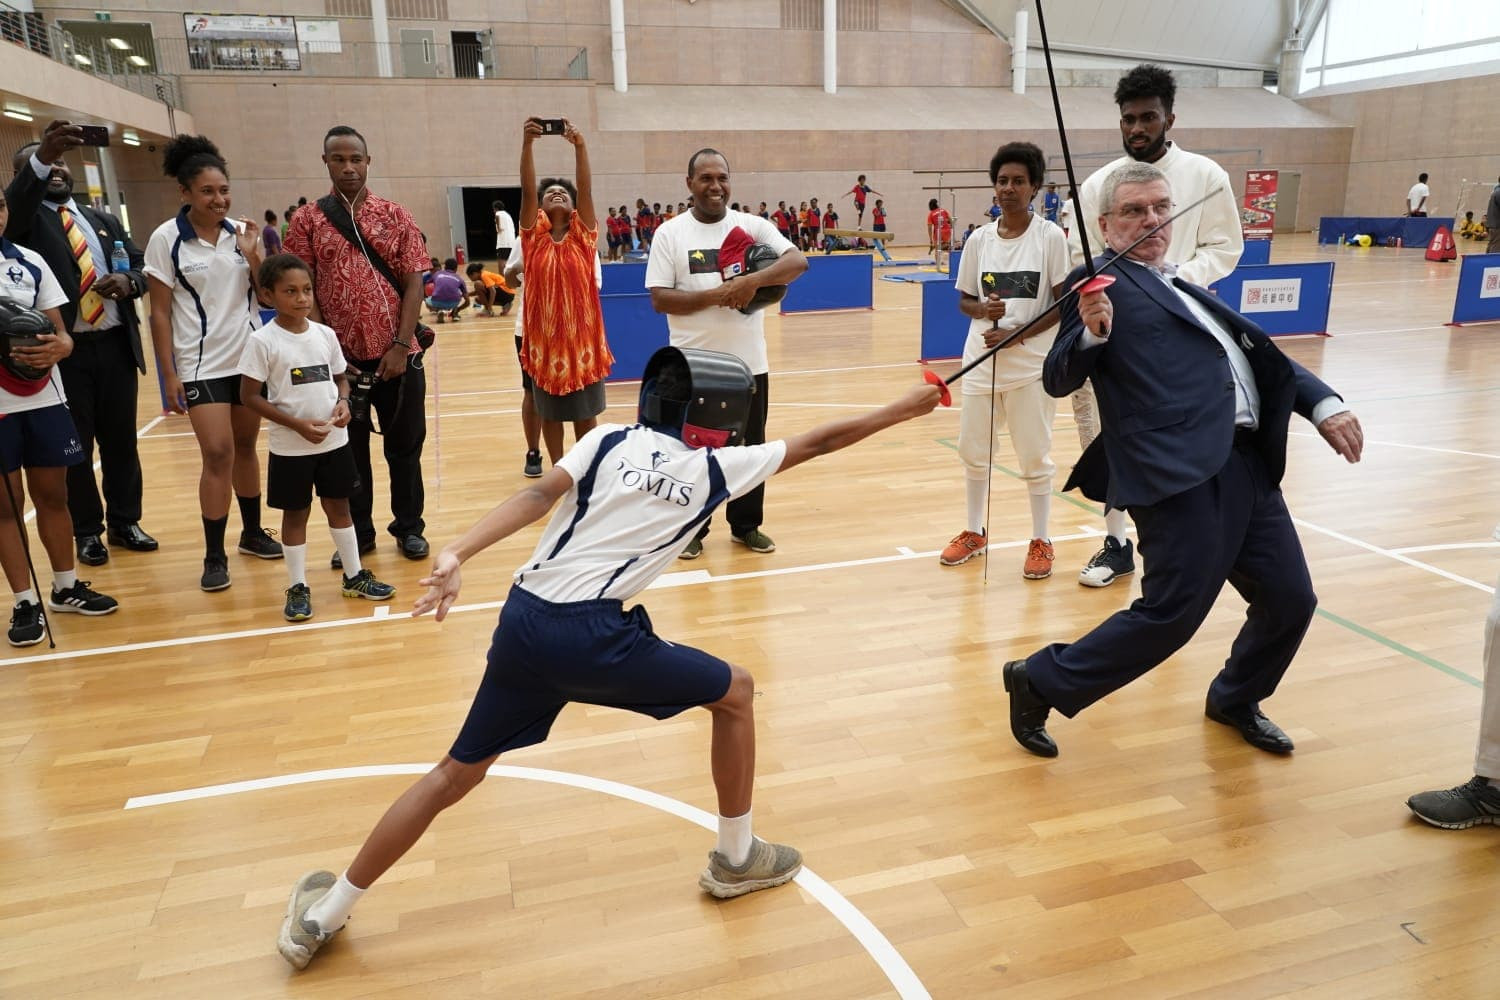 IOC President Thomas Bach visited Taurama Aquatic and Indoor Centre in Papua New Guinea, where he displayed his fencing skills ©Facebook